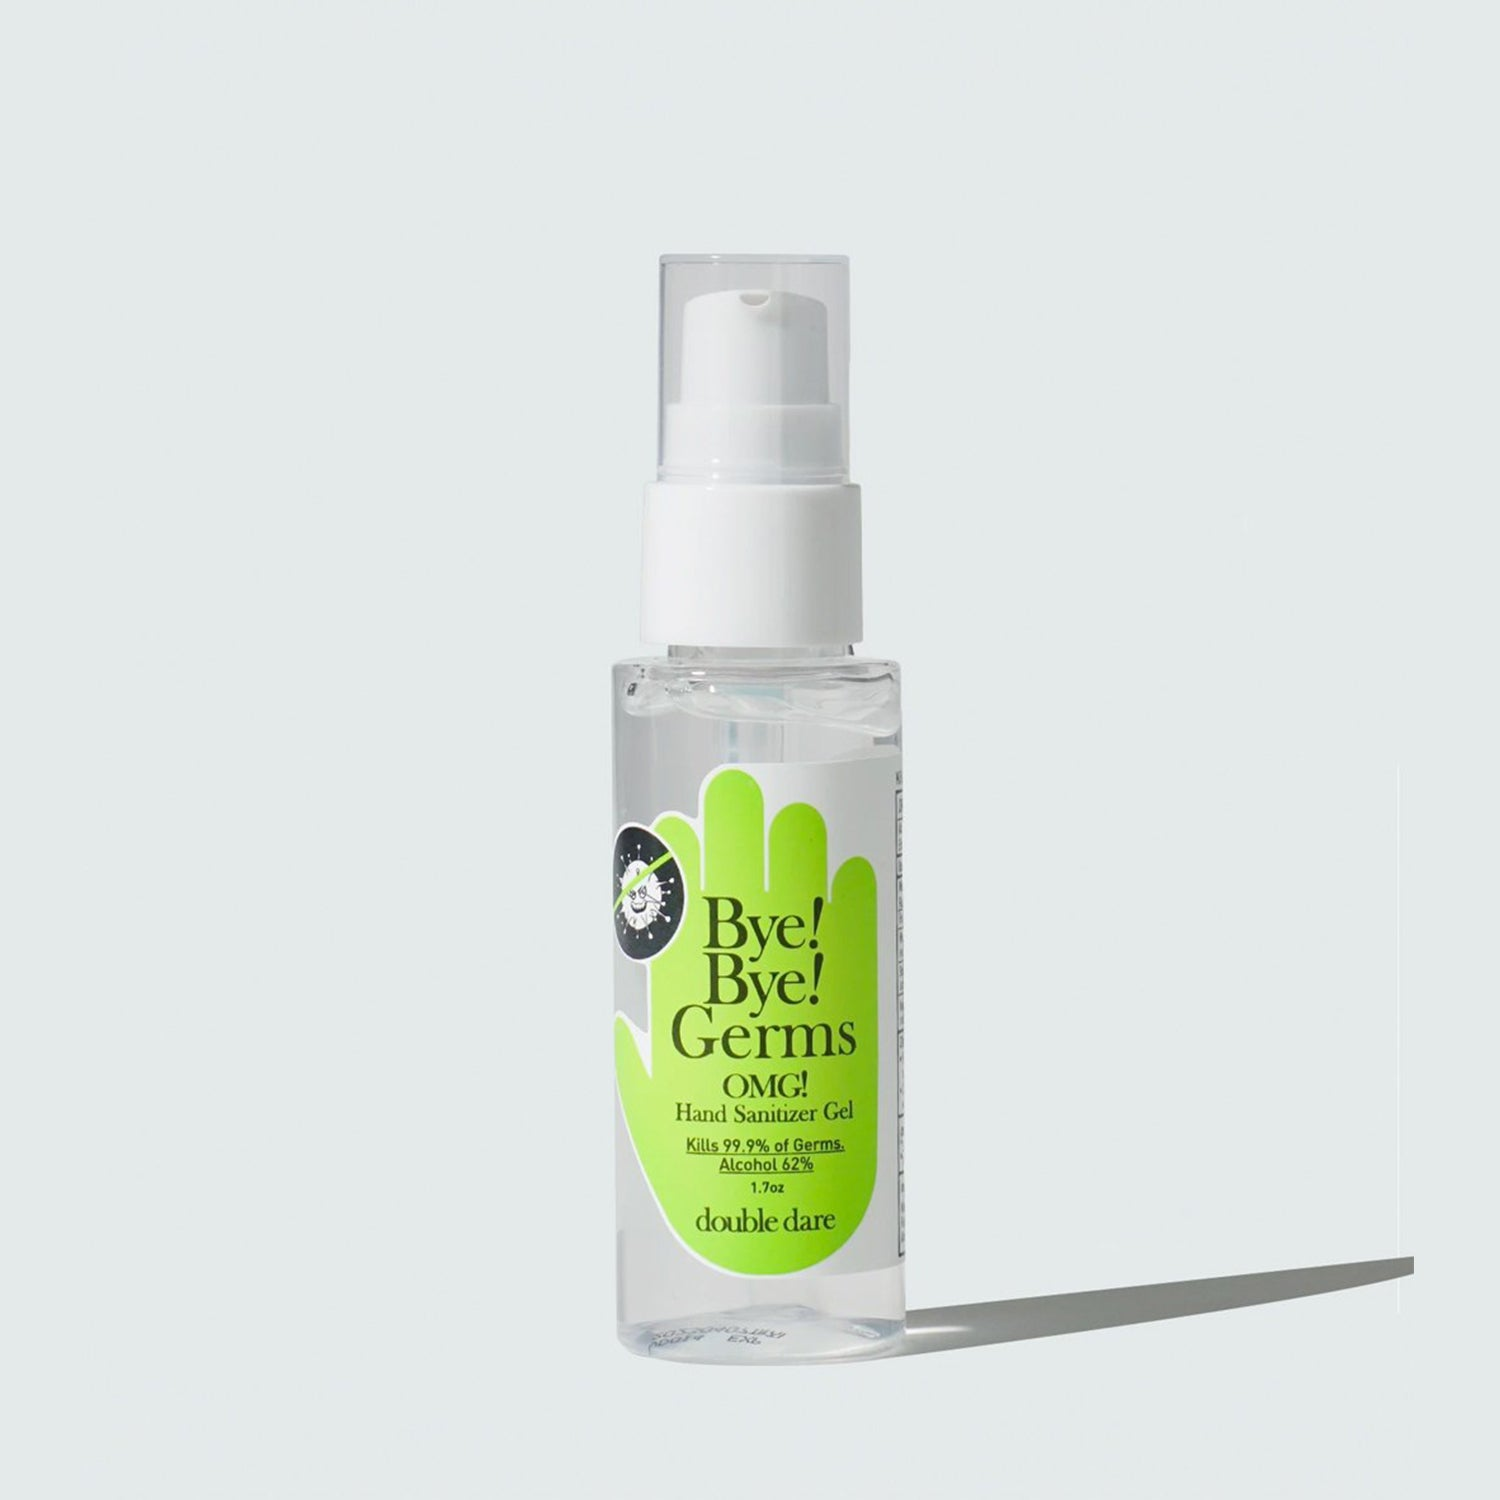 Bye! Bye! Germs OMG!<br>Hand Sanitizer Gel - DOUBLE DARE